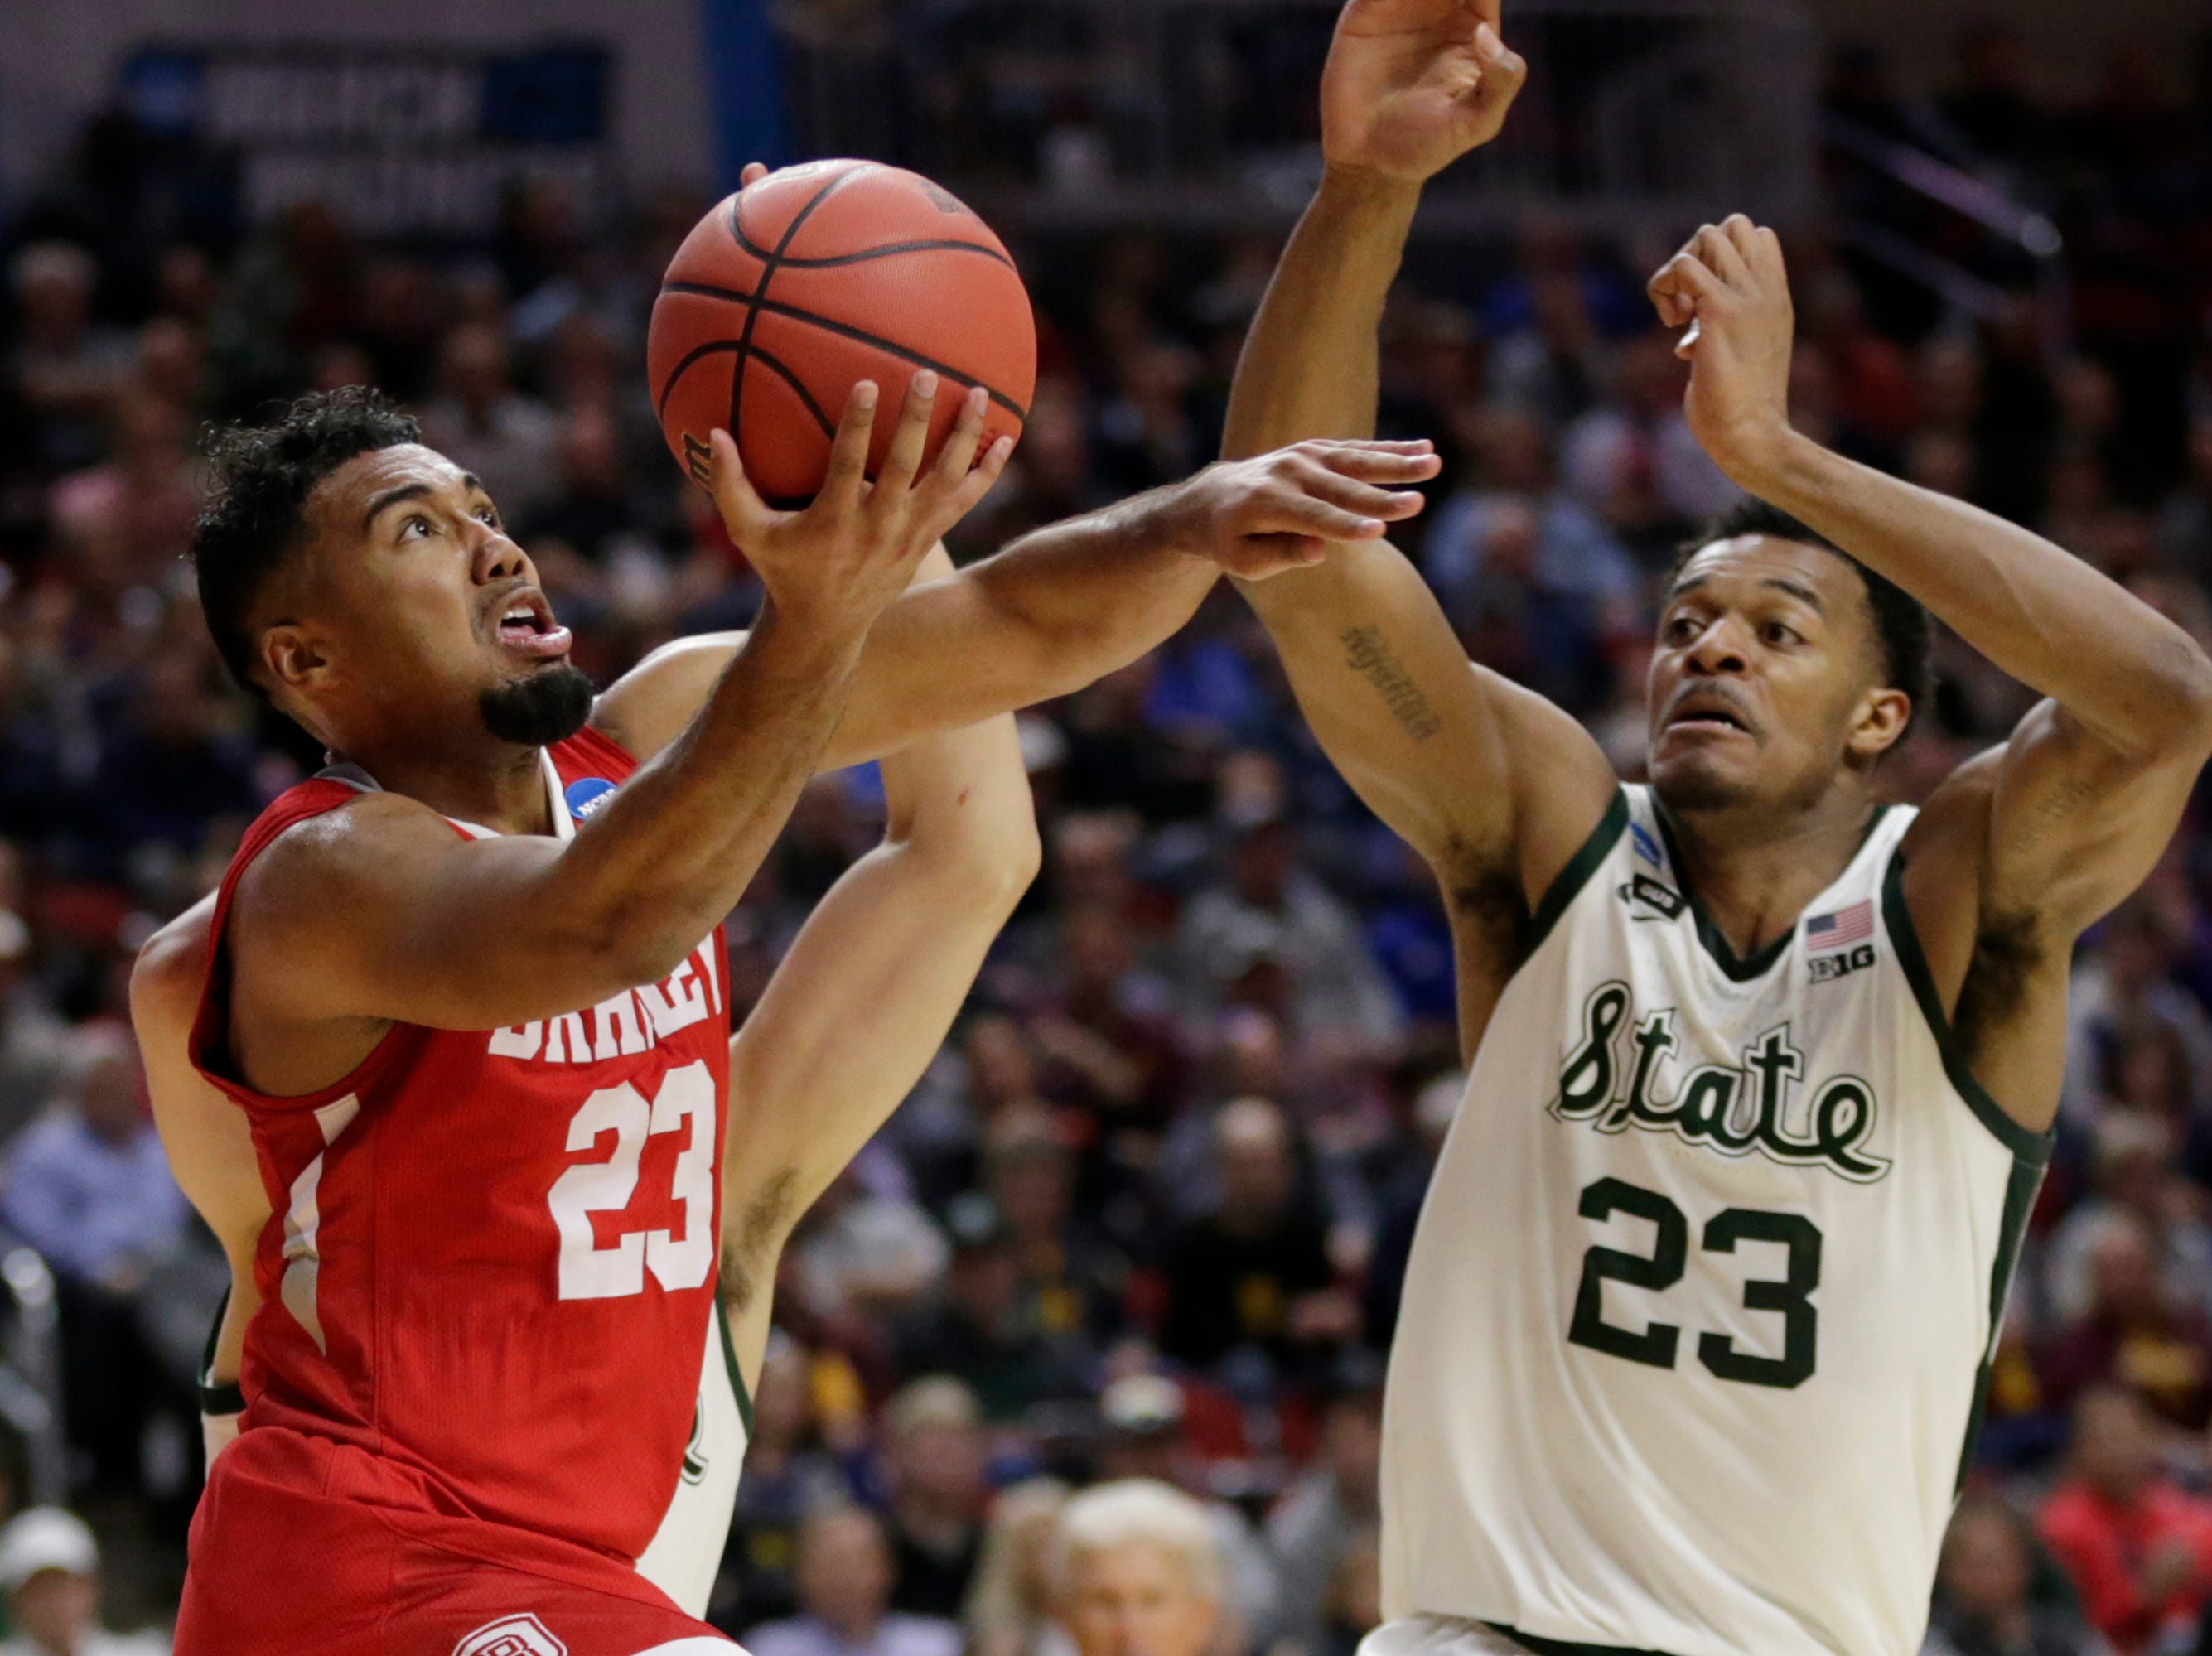 Bradley's Dwayne Lautier-Ogunleye (23) goes for a basket against Michigan State's Xavier Tillman, right, and Conner George, rear, during the first half of a first round men's college basketball game in the NCAA Tournament in Des Moines, Iowa, Thursday, March 21, 2019.